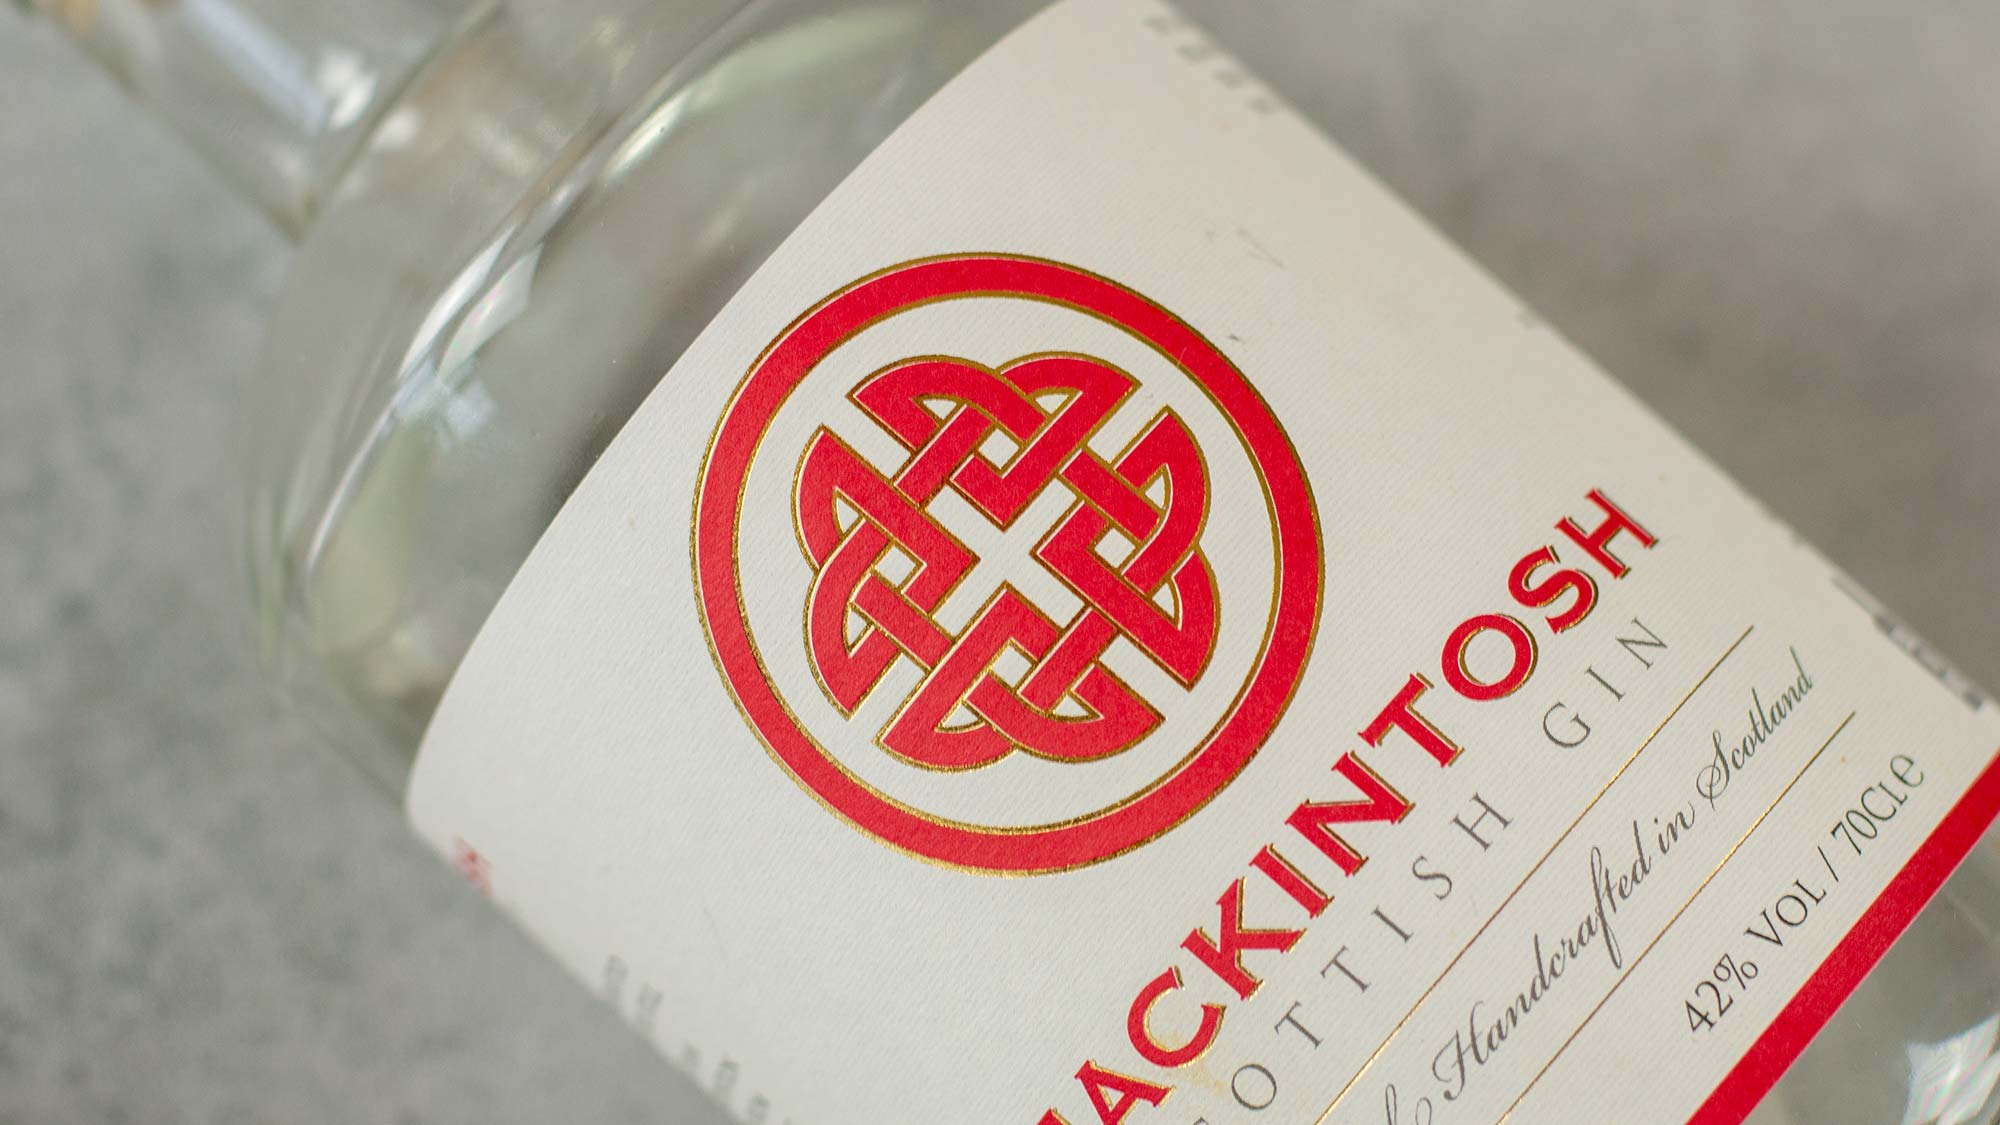 Mackintosh Gin bottle, turned 45 degree to show logo appearing as a heart-shape.